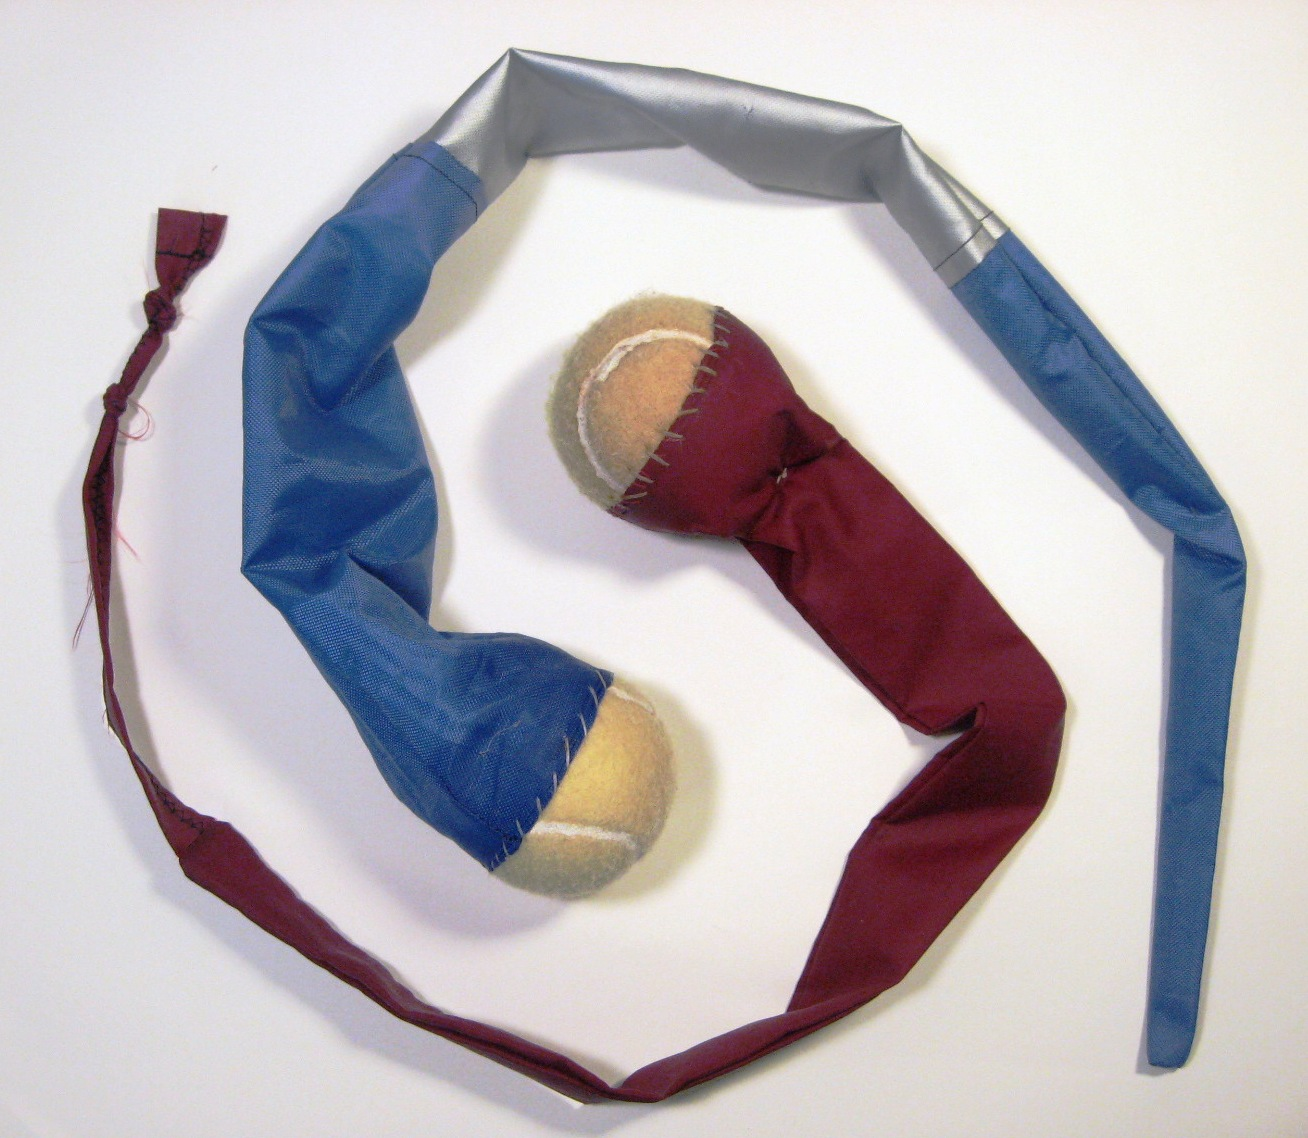 Picture of Homemade Foxtail-type Toy